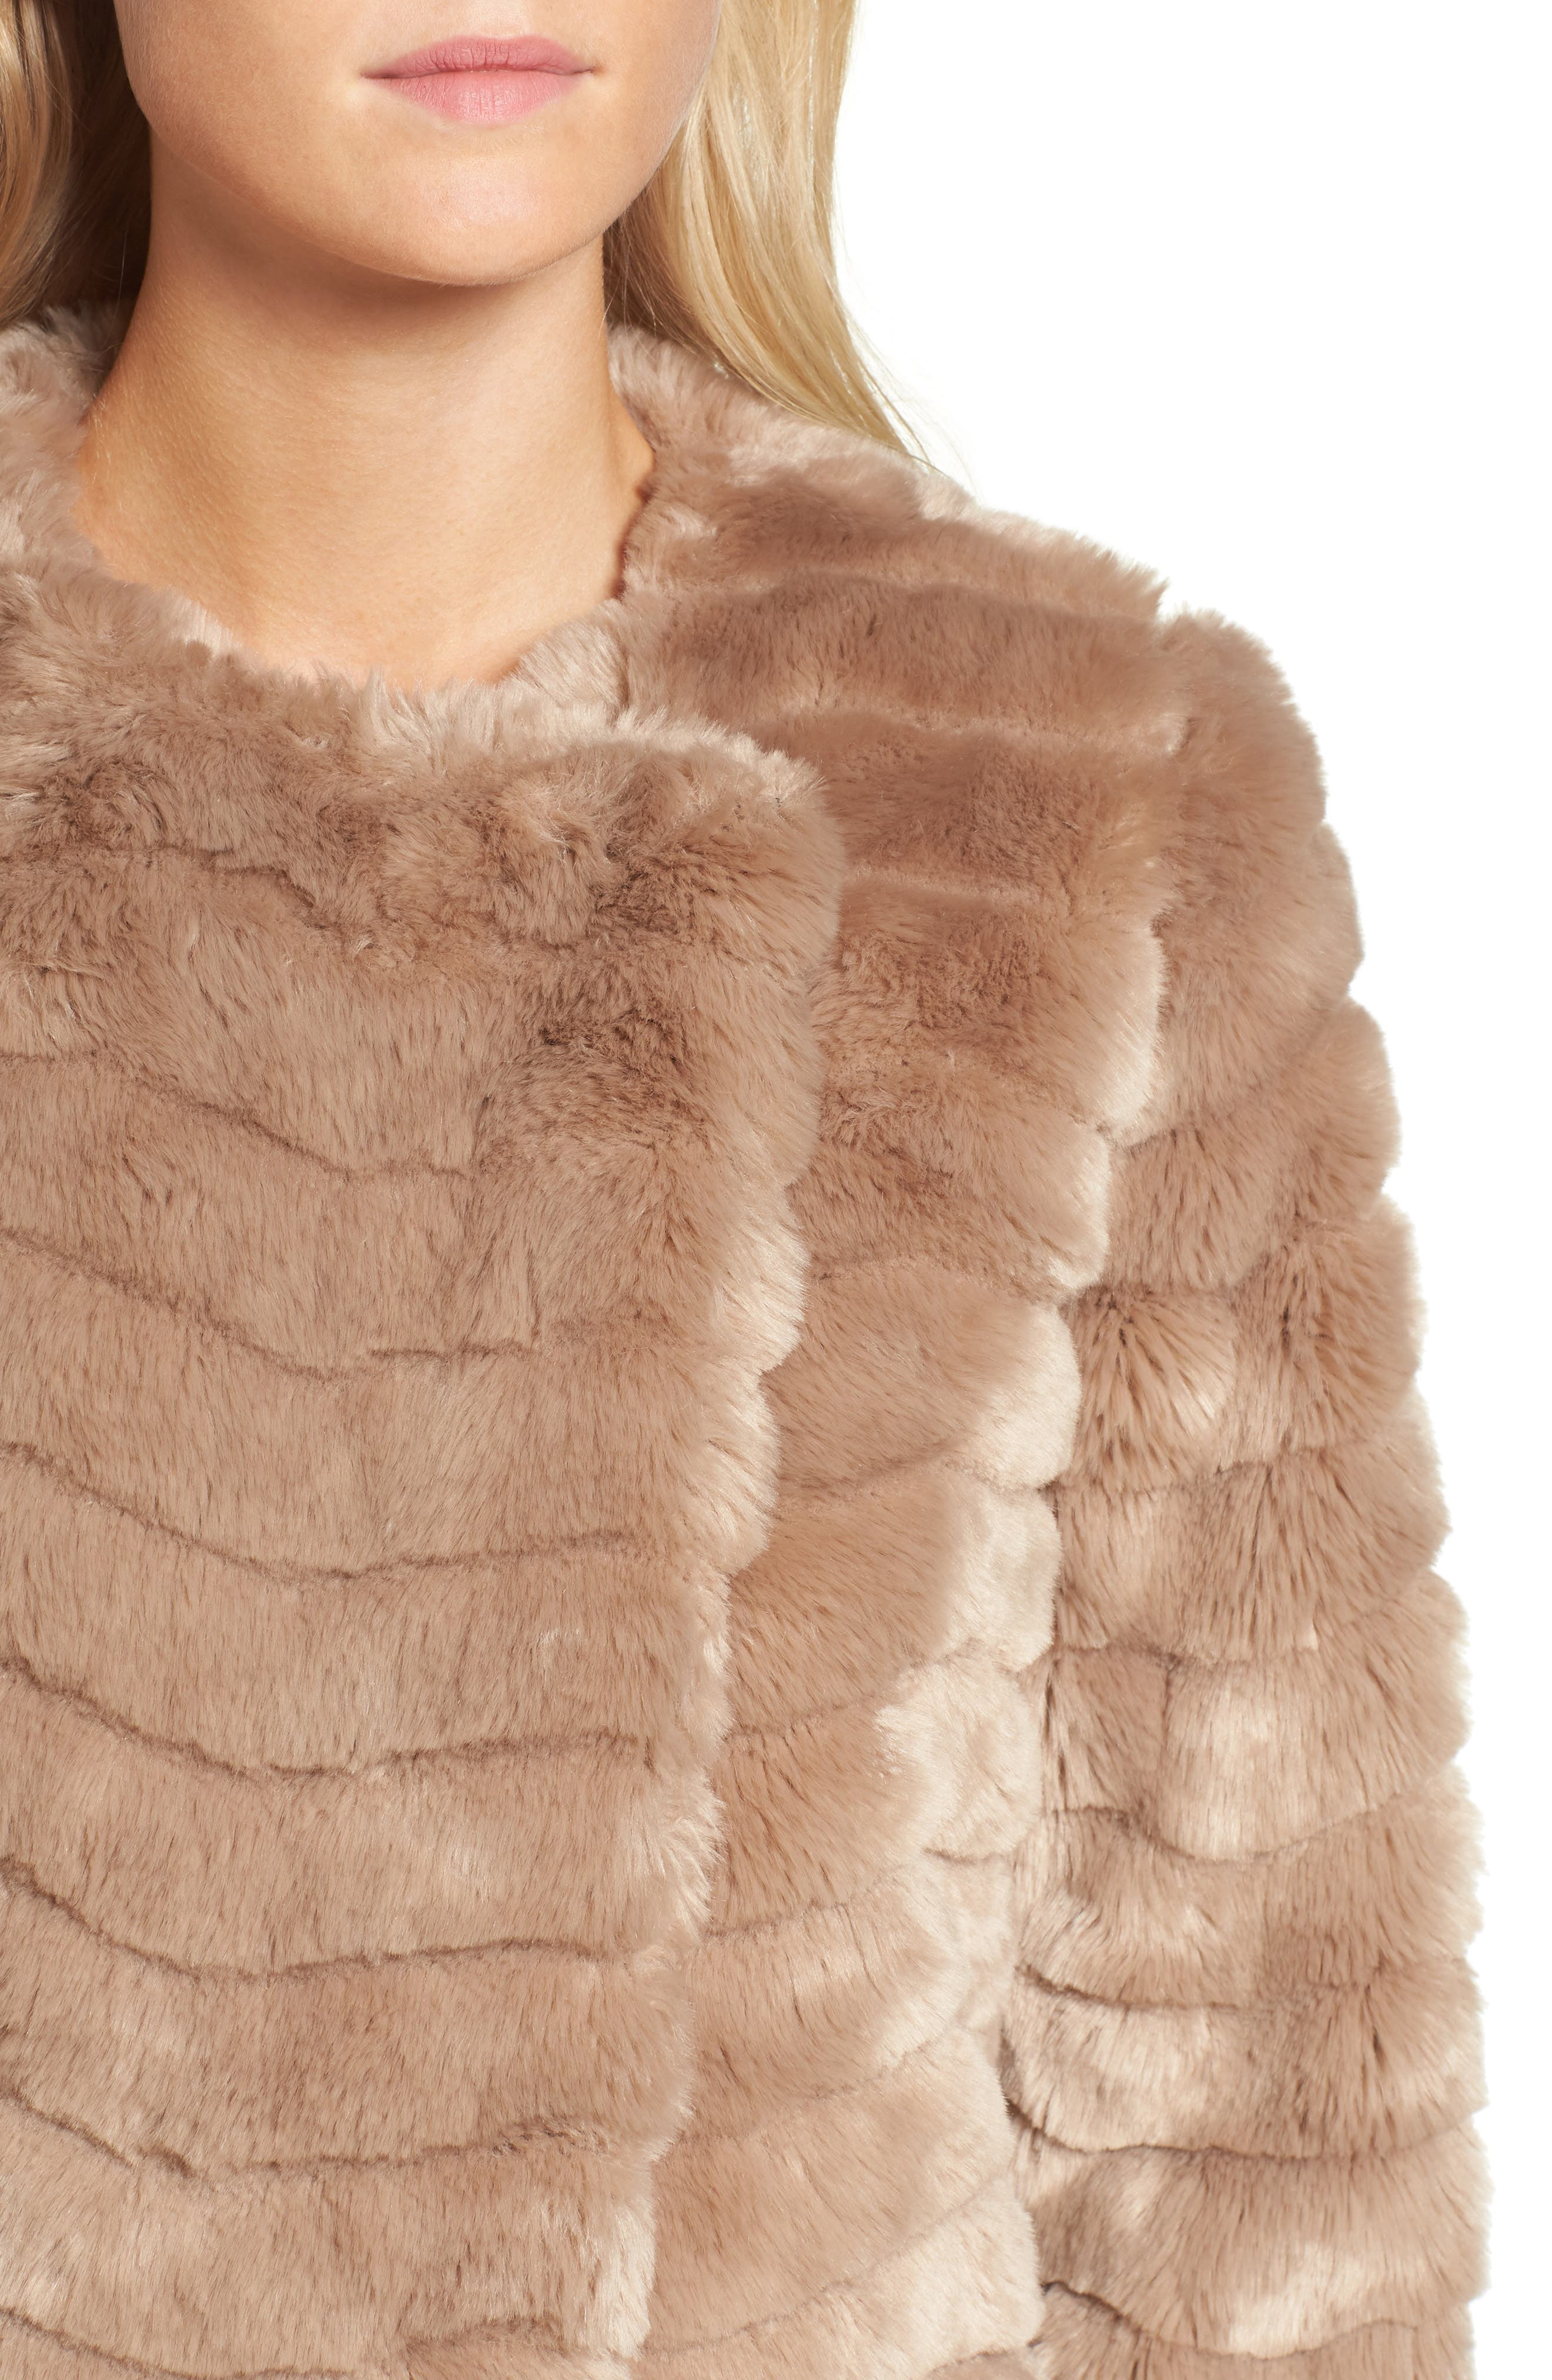 McCoy Faux Fur Coat,                             Alternate thumbnail 4, color,